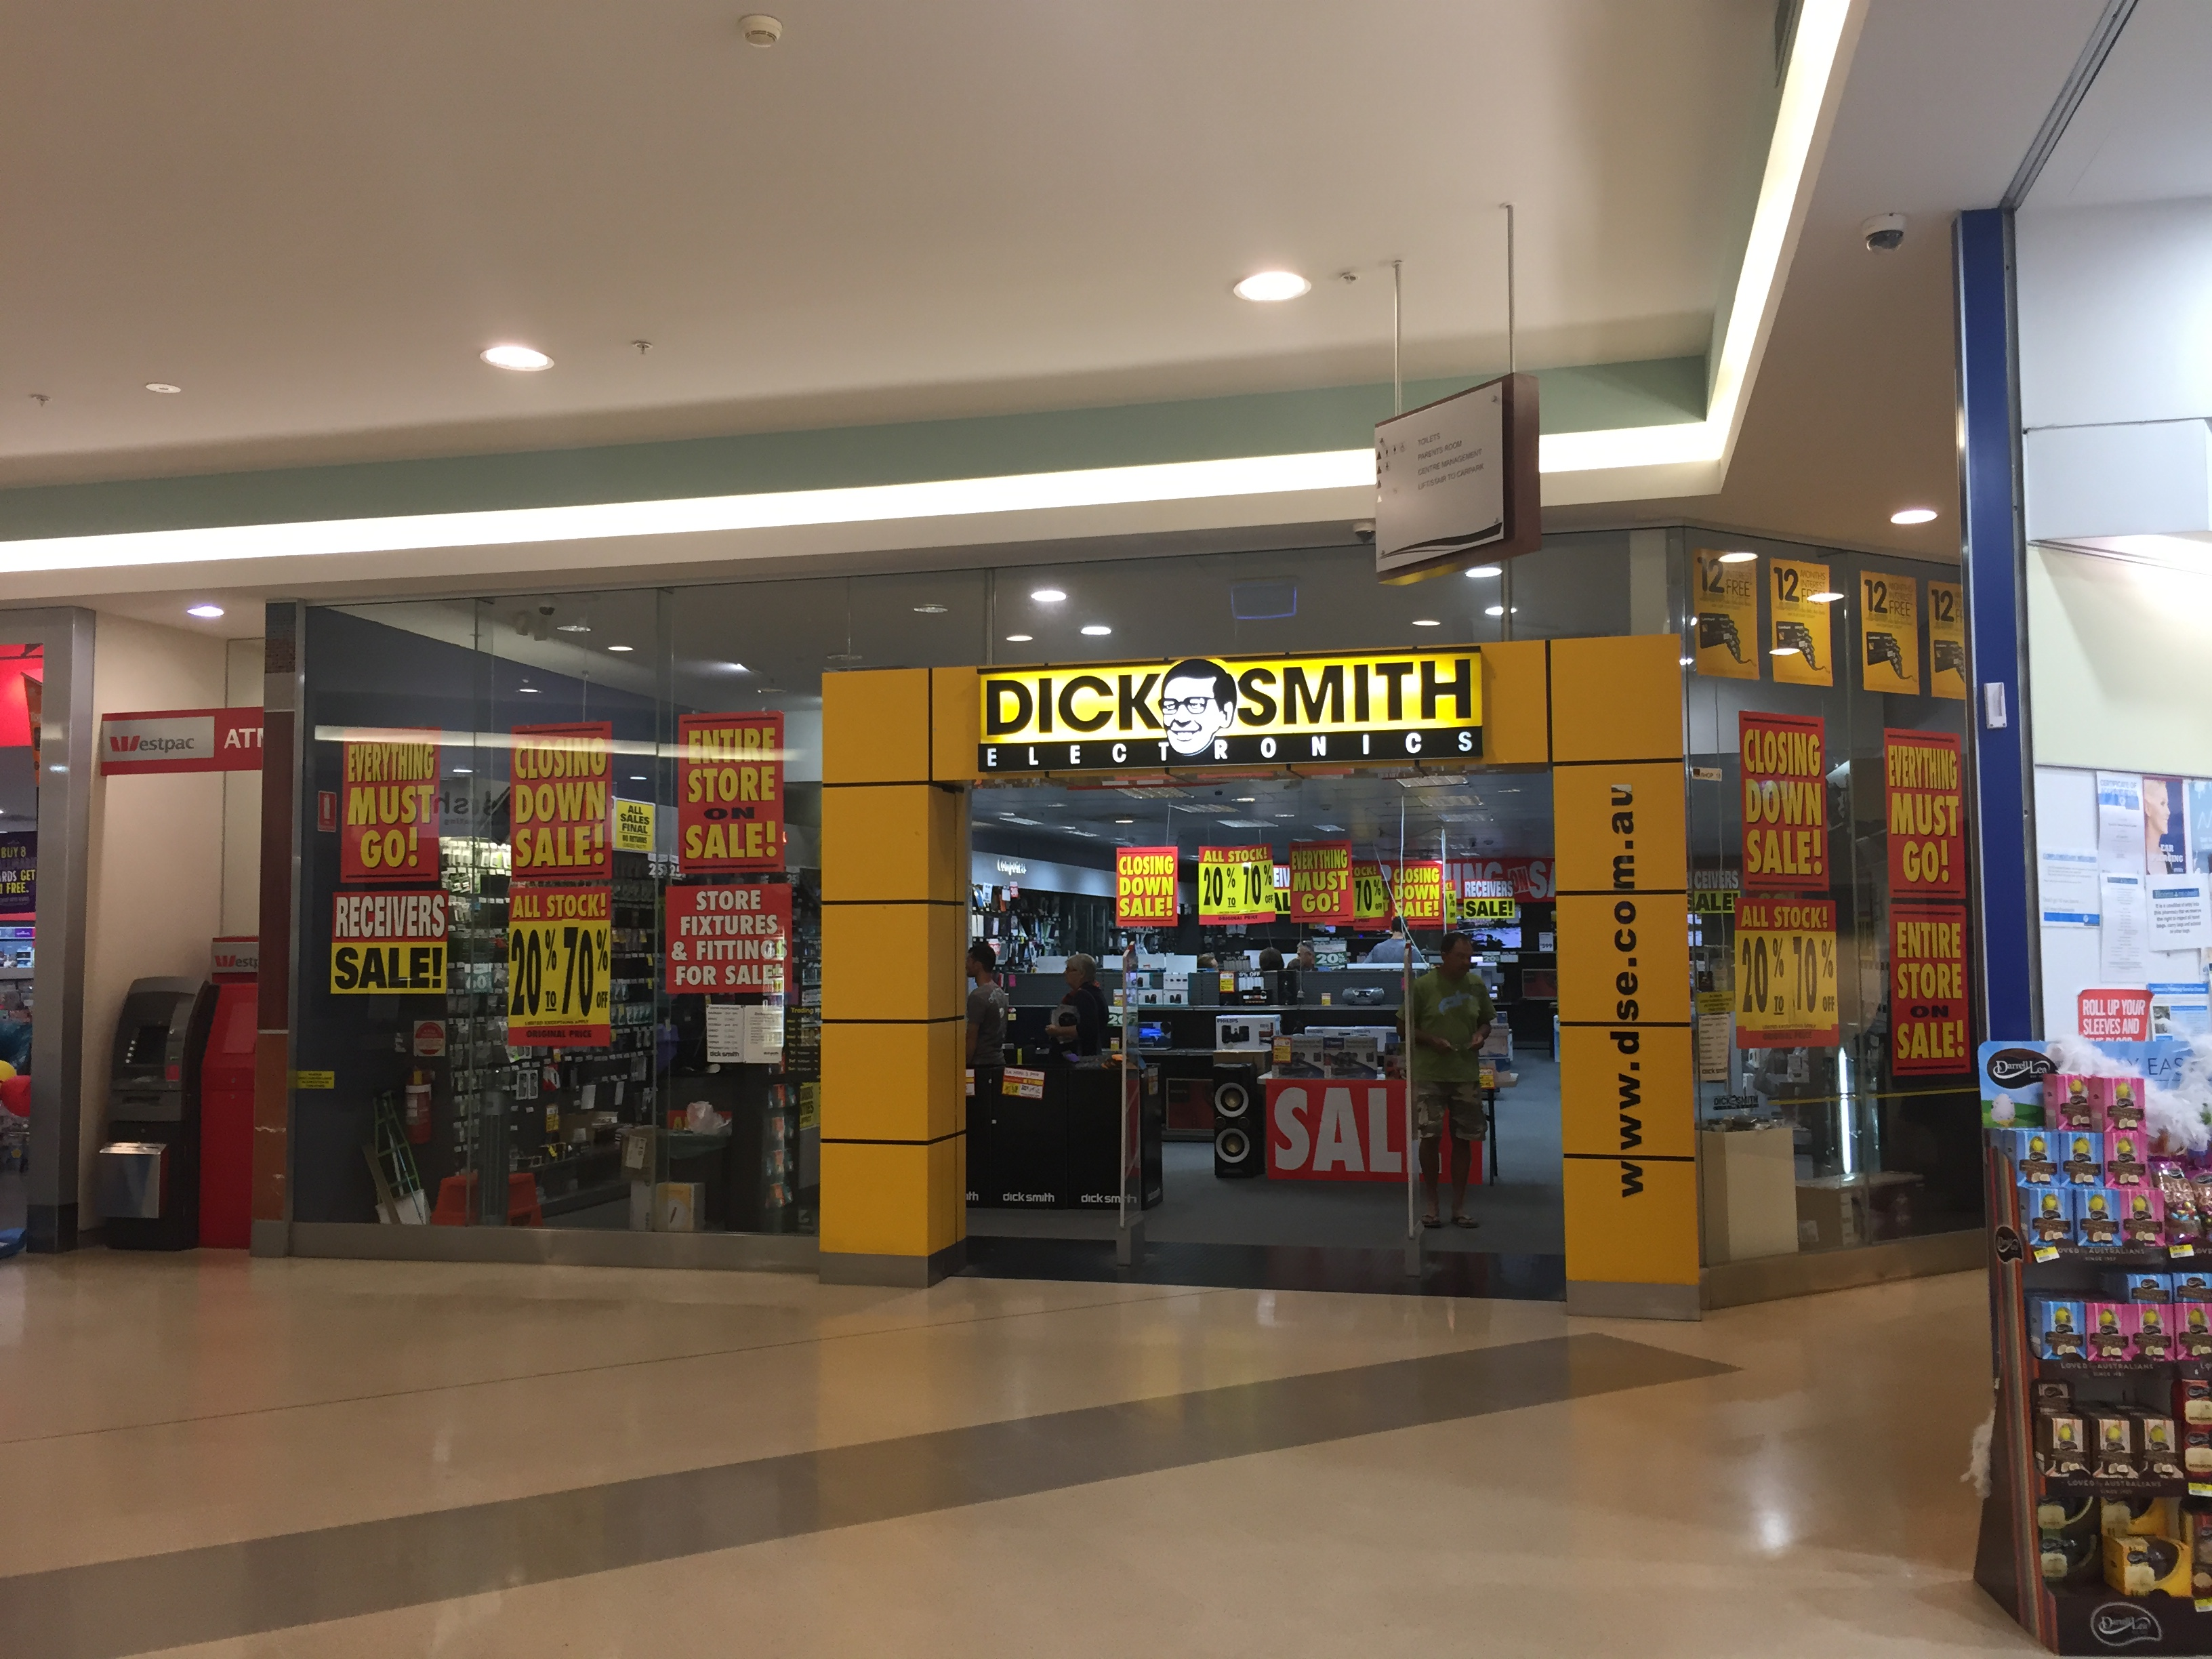 Lost Hobby Shops Dick Smith Electronics R C Toy Memories Can You Believe It I Actually Forgot Build Electronic Circuits Closing Down Sale 2016